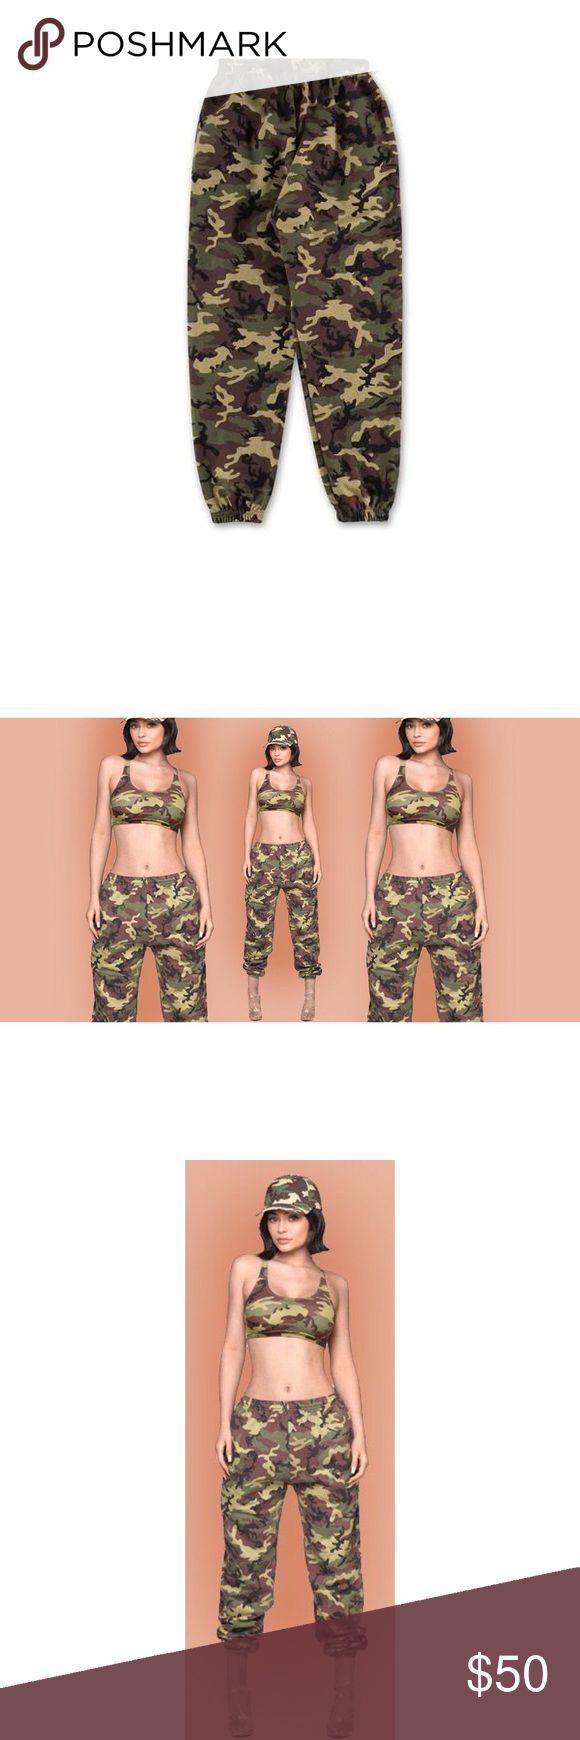 The Kylie Shop Oversized Camouflage Sweatpants Worn Once In Great Condition! Sold Out Online! Size Medium 100% Authentic  100% Cotton Made In The USA Please Review All Photos Prior To Purchase All Sales Are Final! Any Questions Please Ask! Thanks And Happy Shopping! the kylie shop Pants Track Pants & Joggers